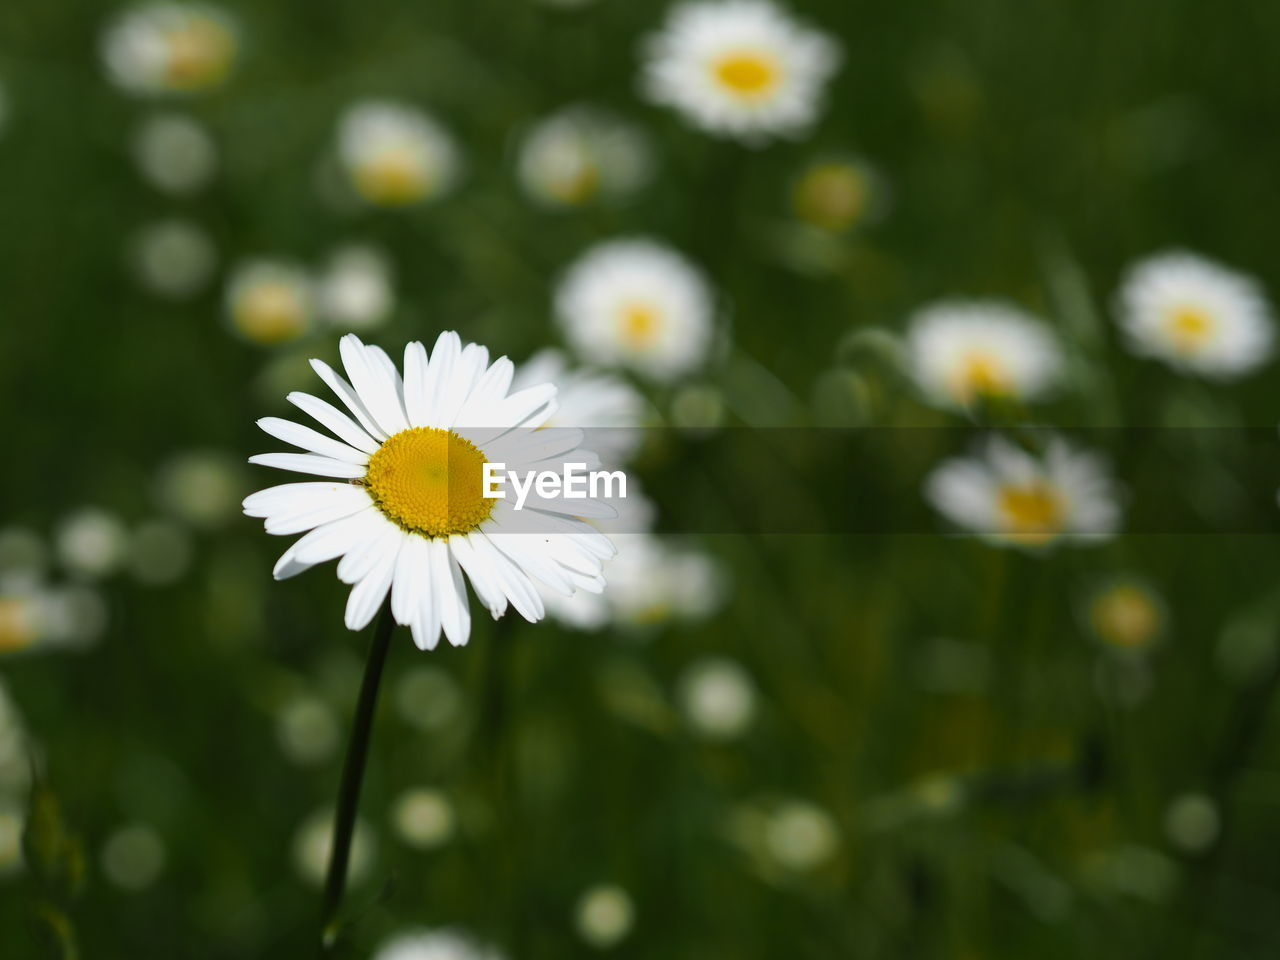 flower, petal, nature, beauty in nature, fragility, white color, freshness, flower head, daisy, growth, blooming, yellow, pollen, outdoors, close-up, day, plant, no people